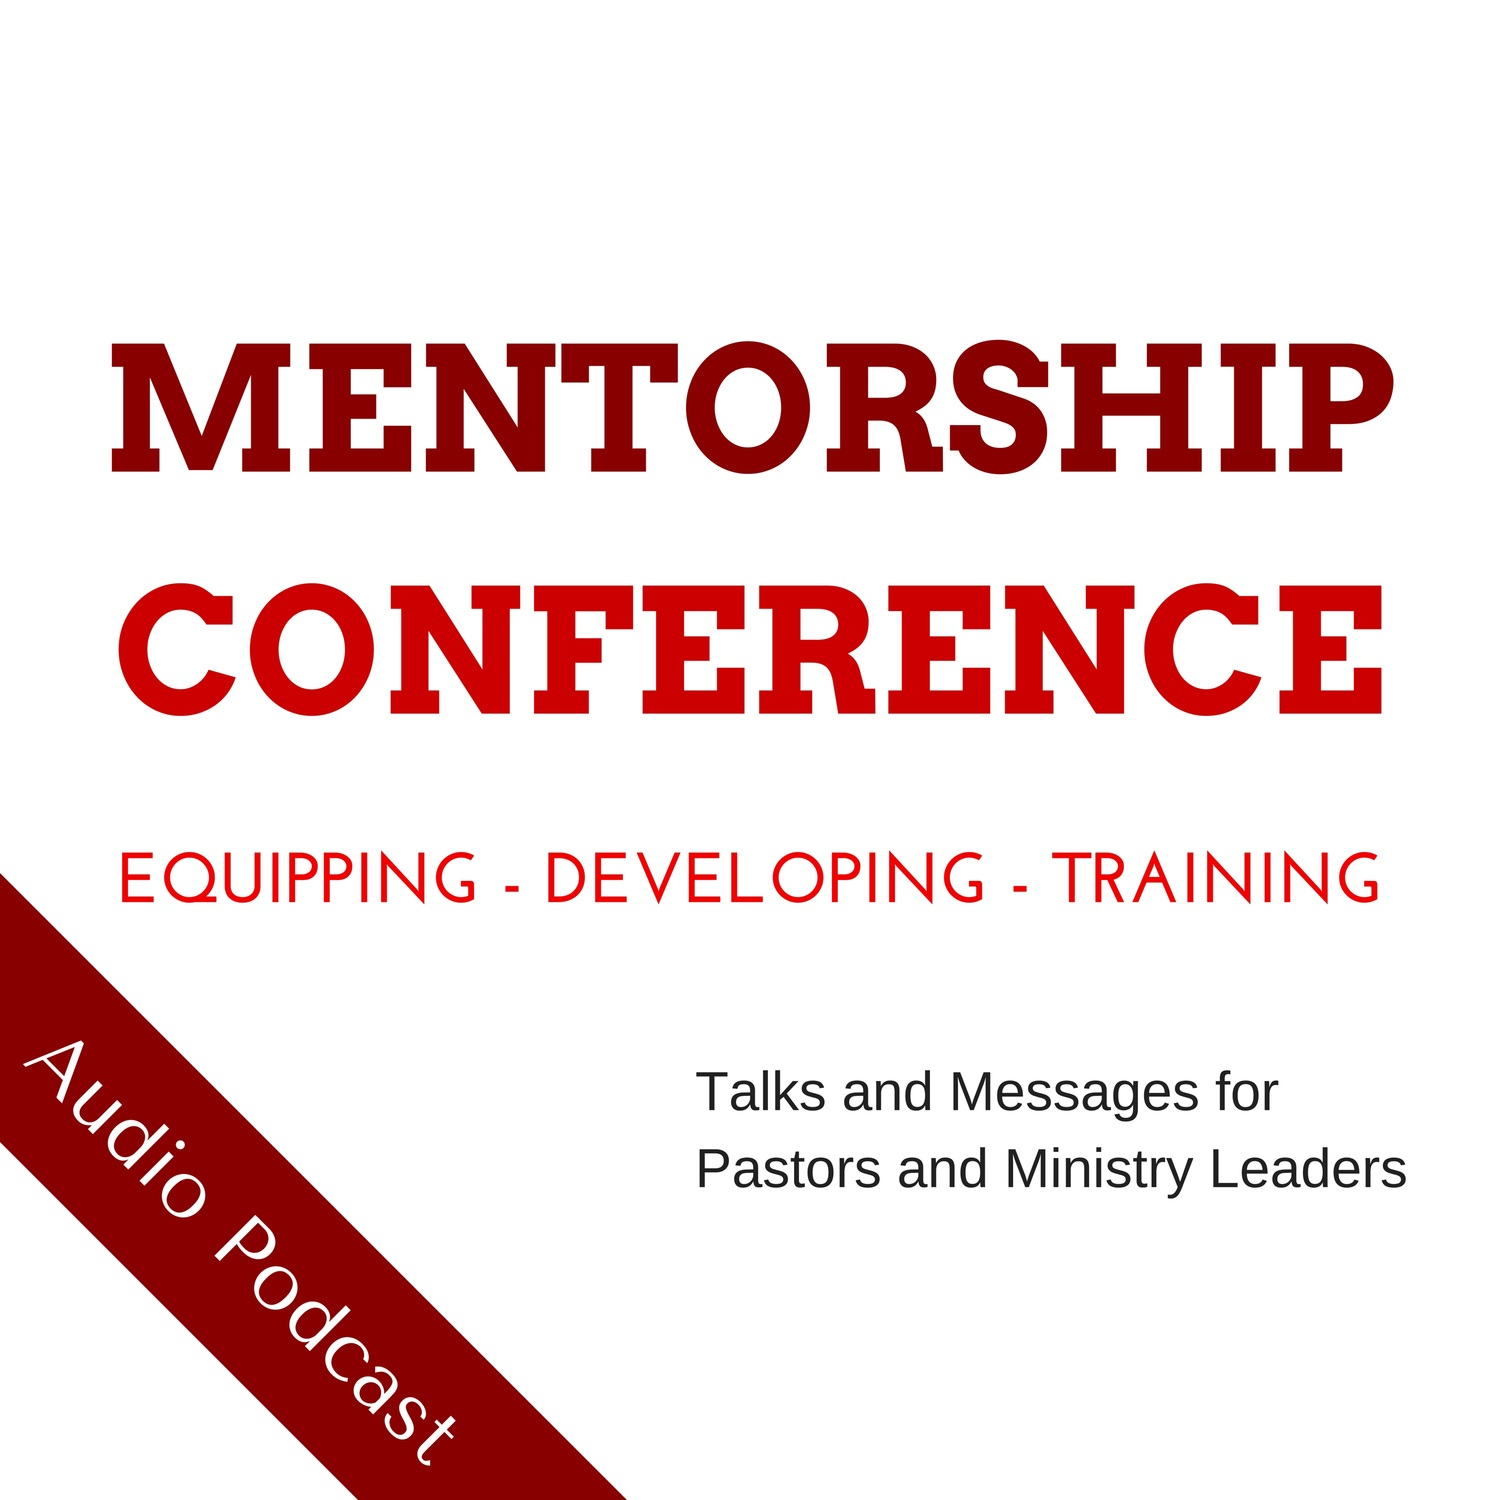 Mentorship Podcast -  MENTORSHIP CONFERENCE